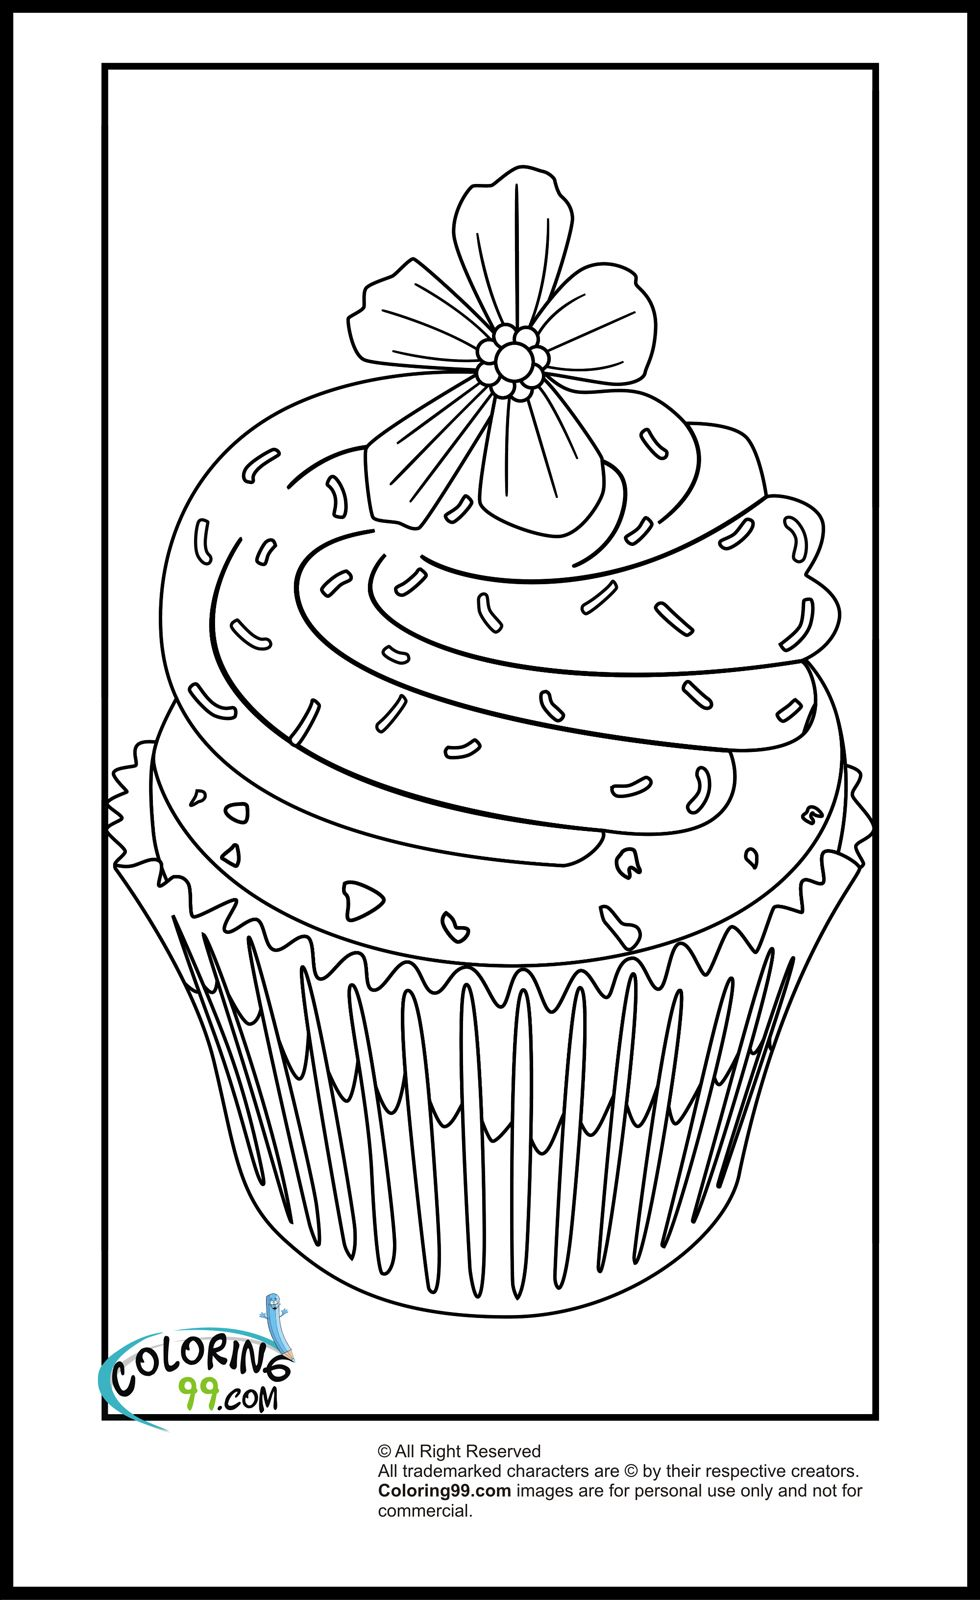 "blue and sprinkle coloring pages | iColor ""Cupcakes"" ~ A Cupcake with Flower Violet on top ..."